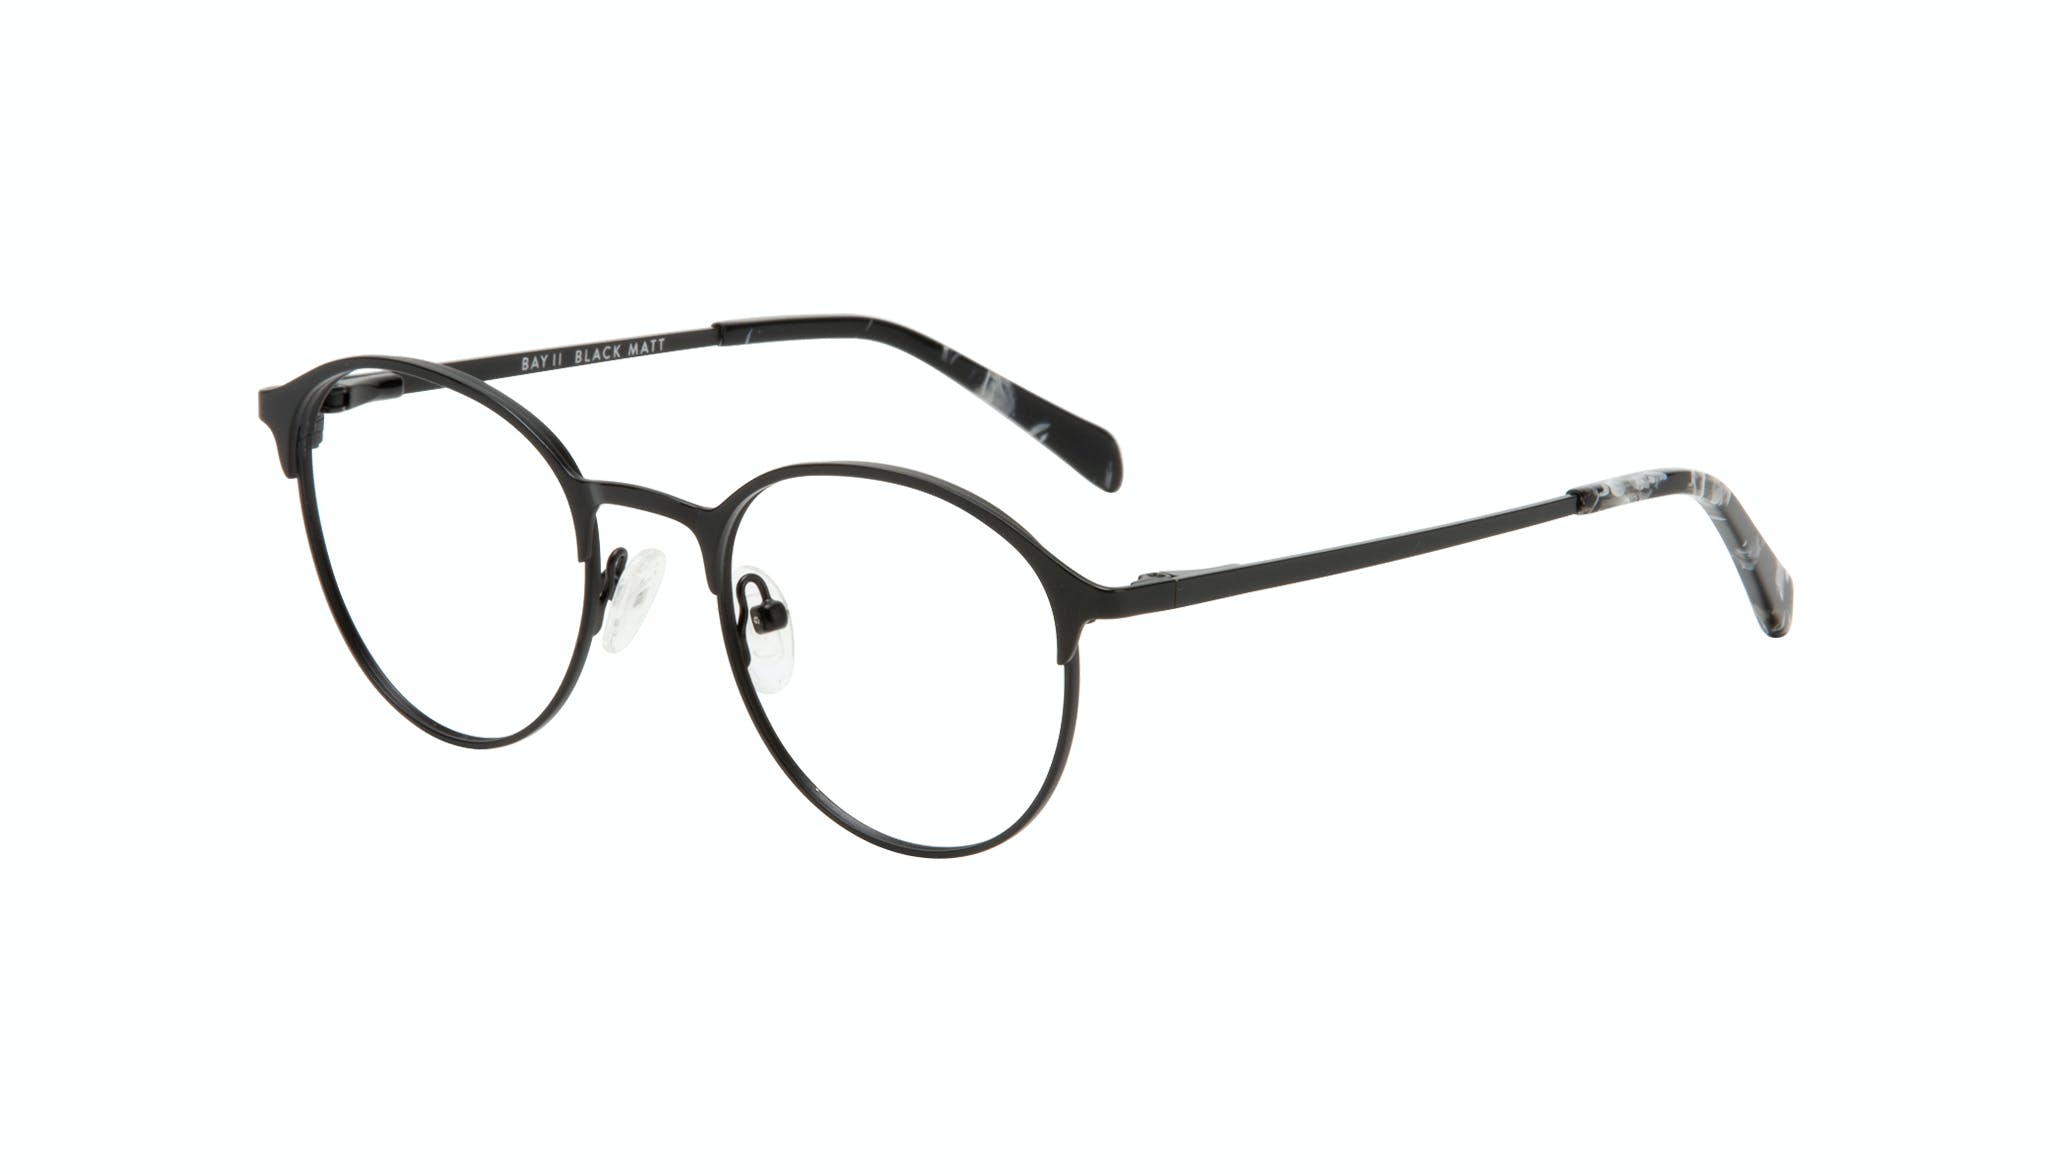 Affordable Fashion Glasses Round Eyeglasses Women Bay II Black Matte Tilt